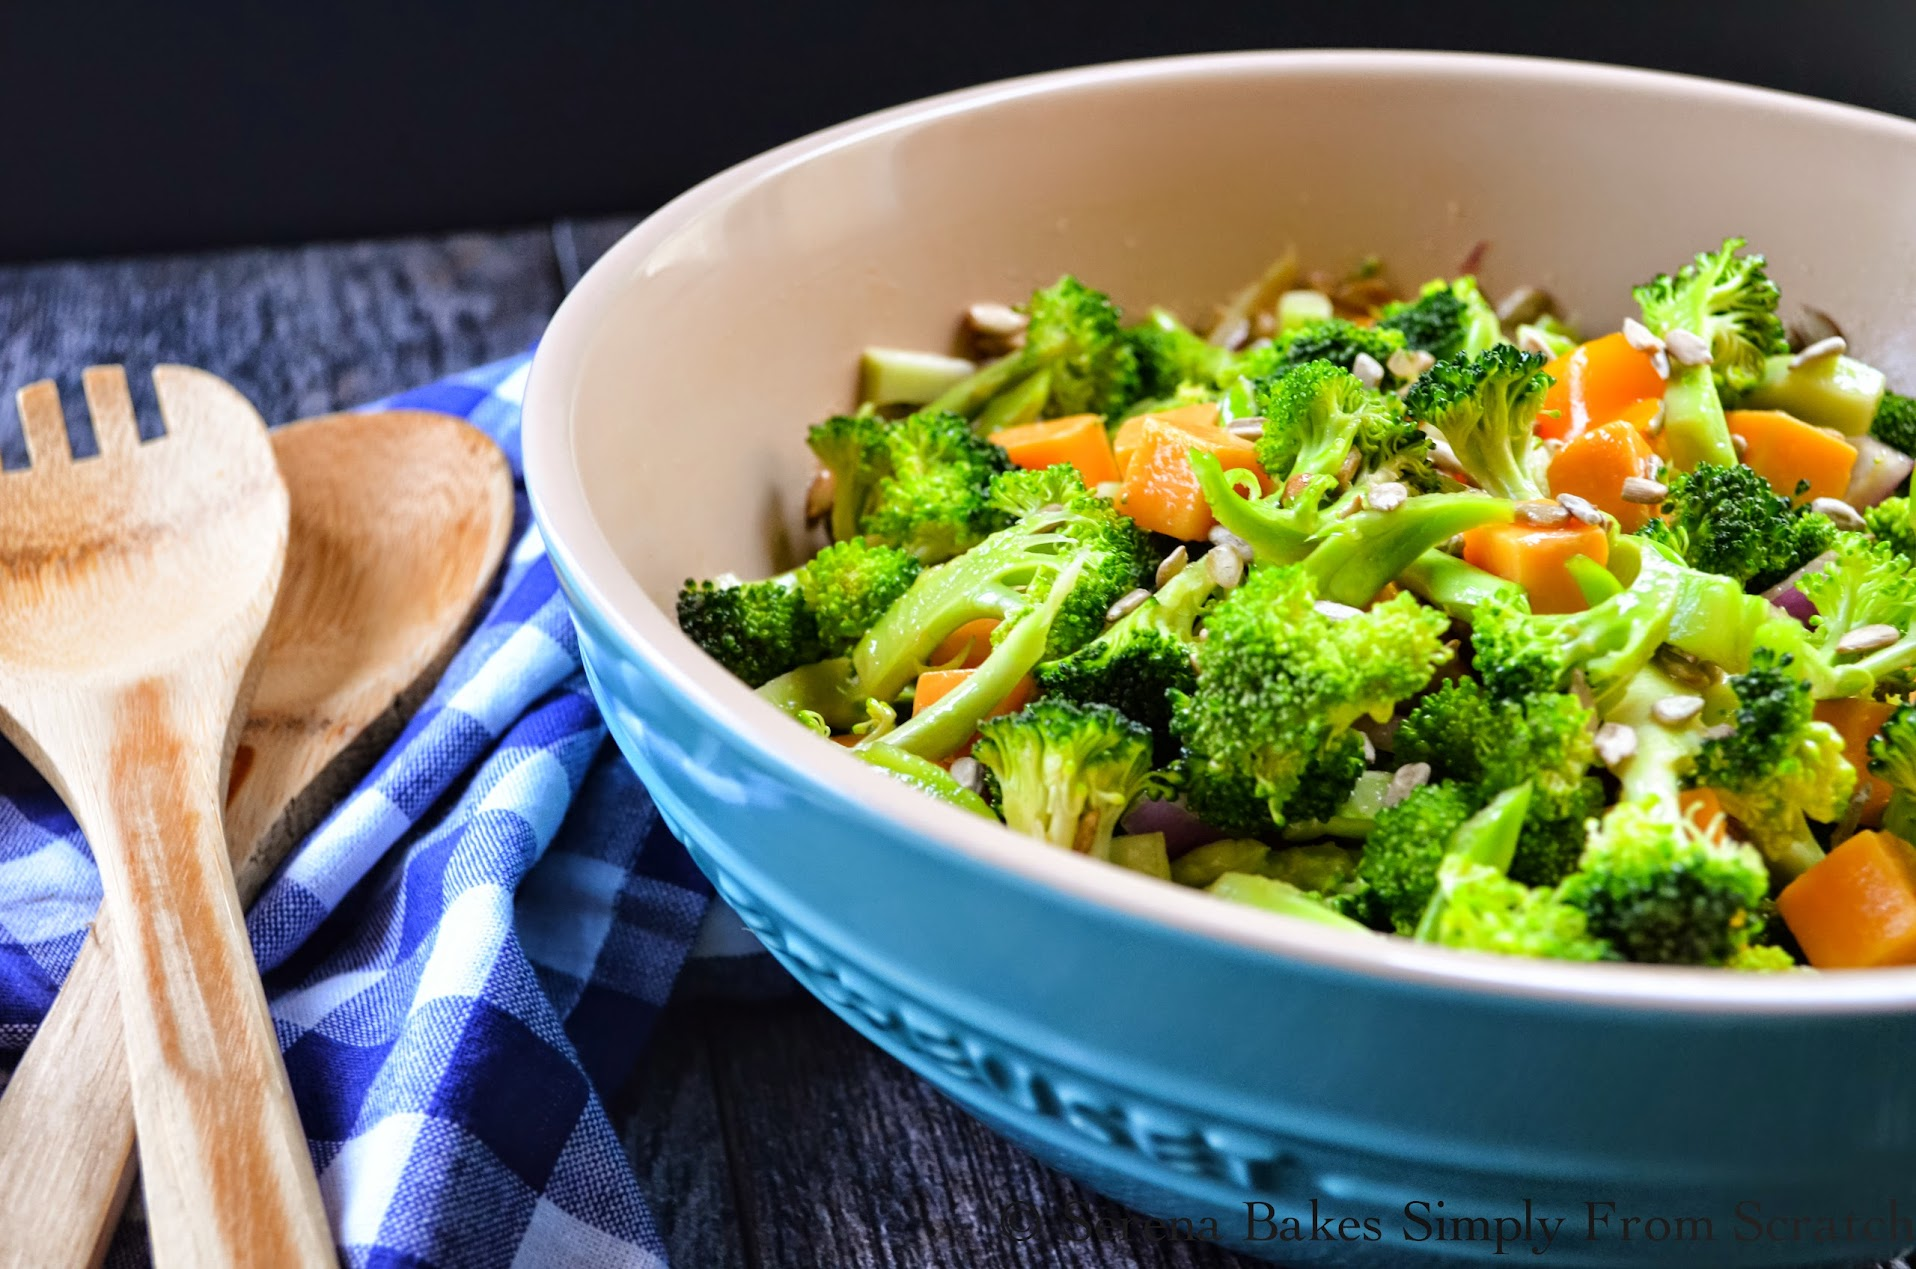 Broccoli Salad a perfect salad for your next gathering or barbecue.